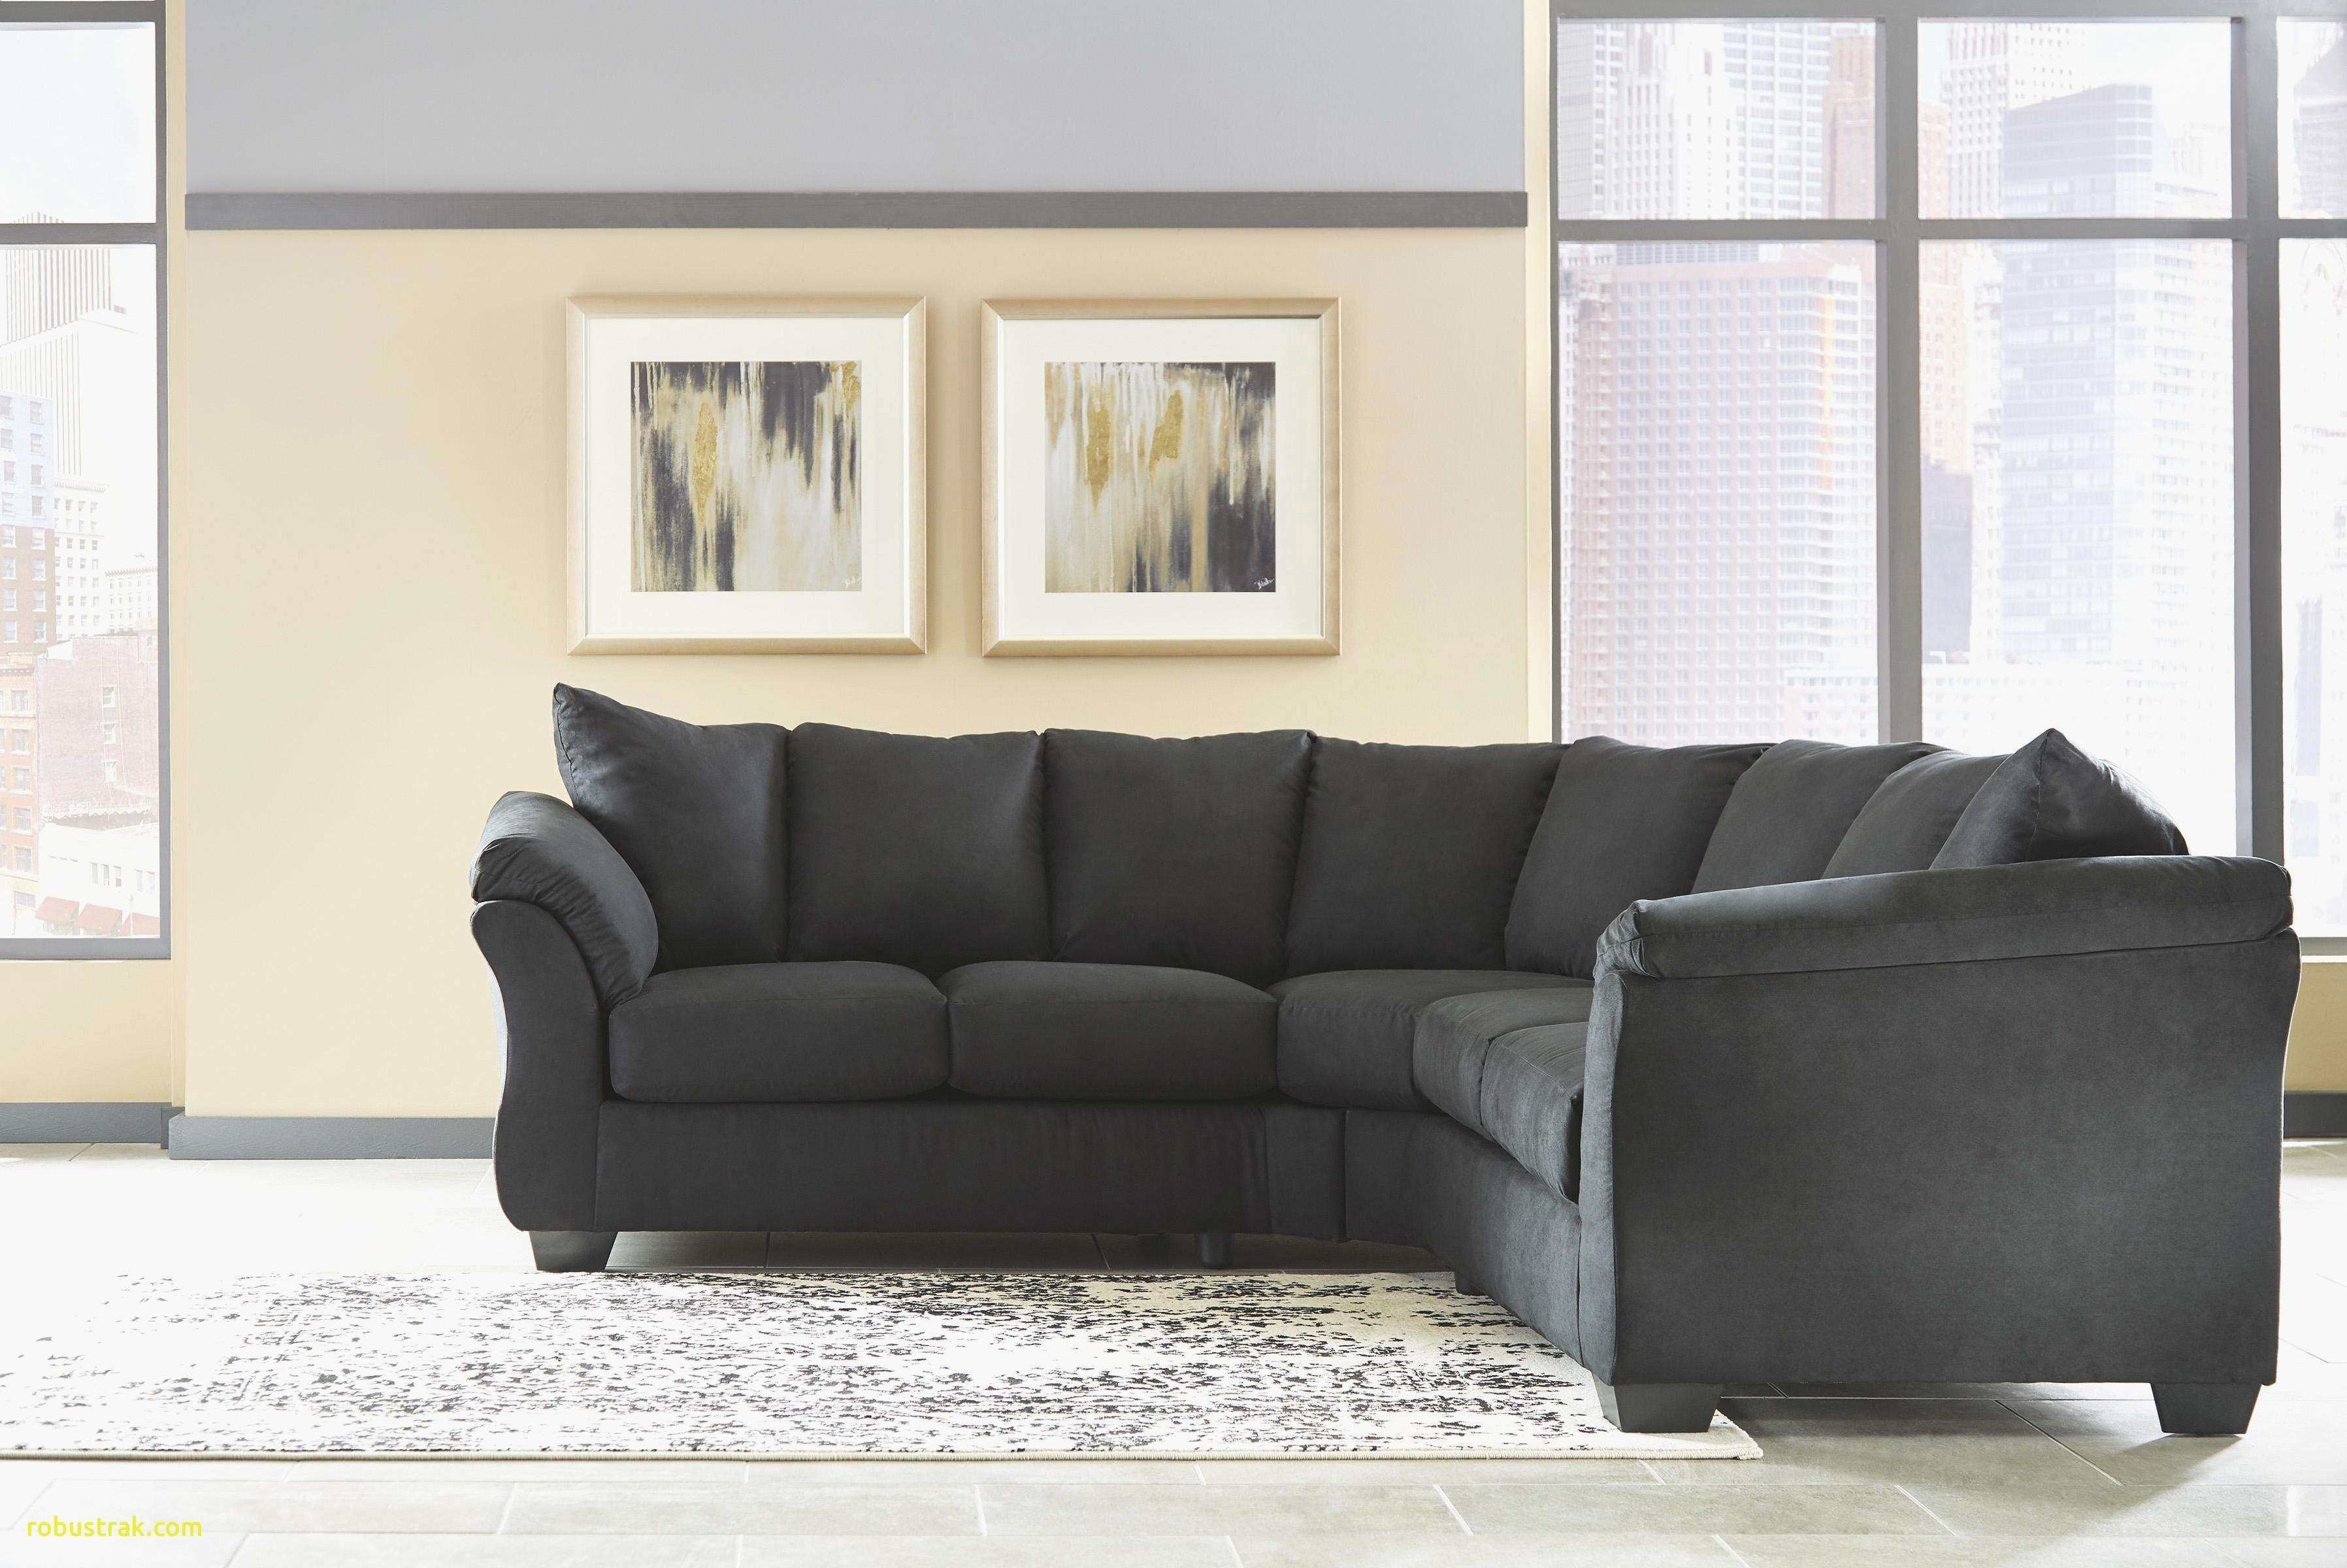 28 Unique Of 100 Inch Sectional Sofa - Home Best Ideas with Kerri 2 Piece Sectionals With Raf Chaise (Image 2 of 30)